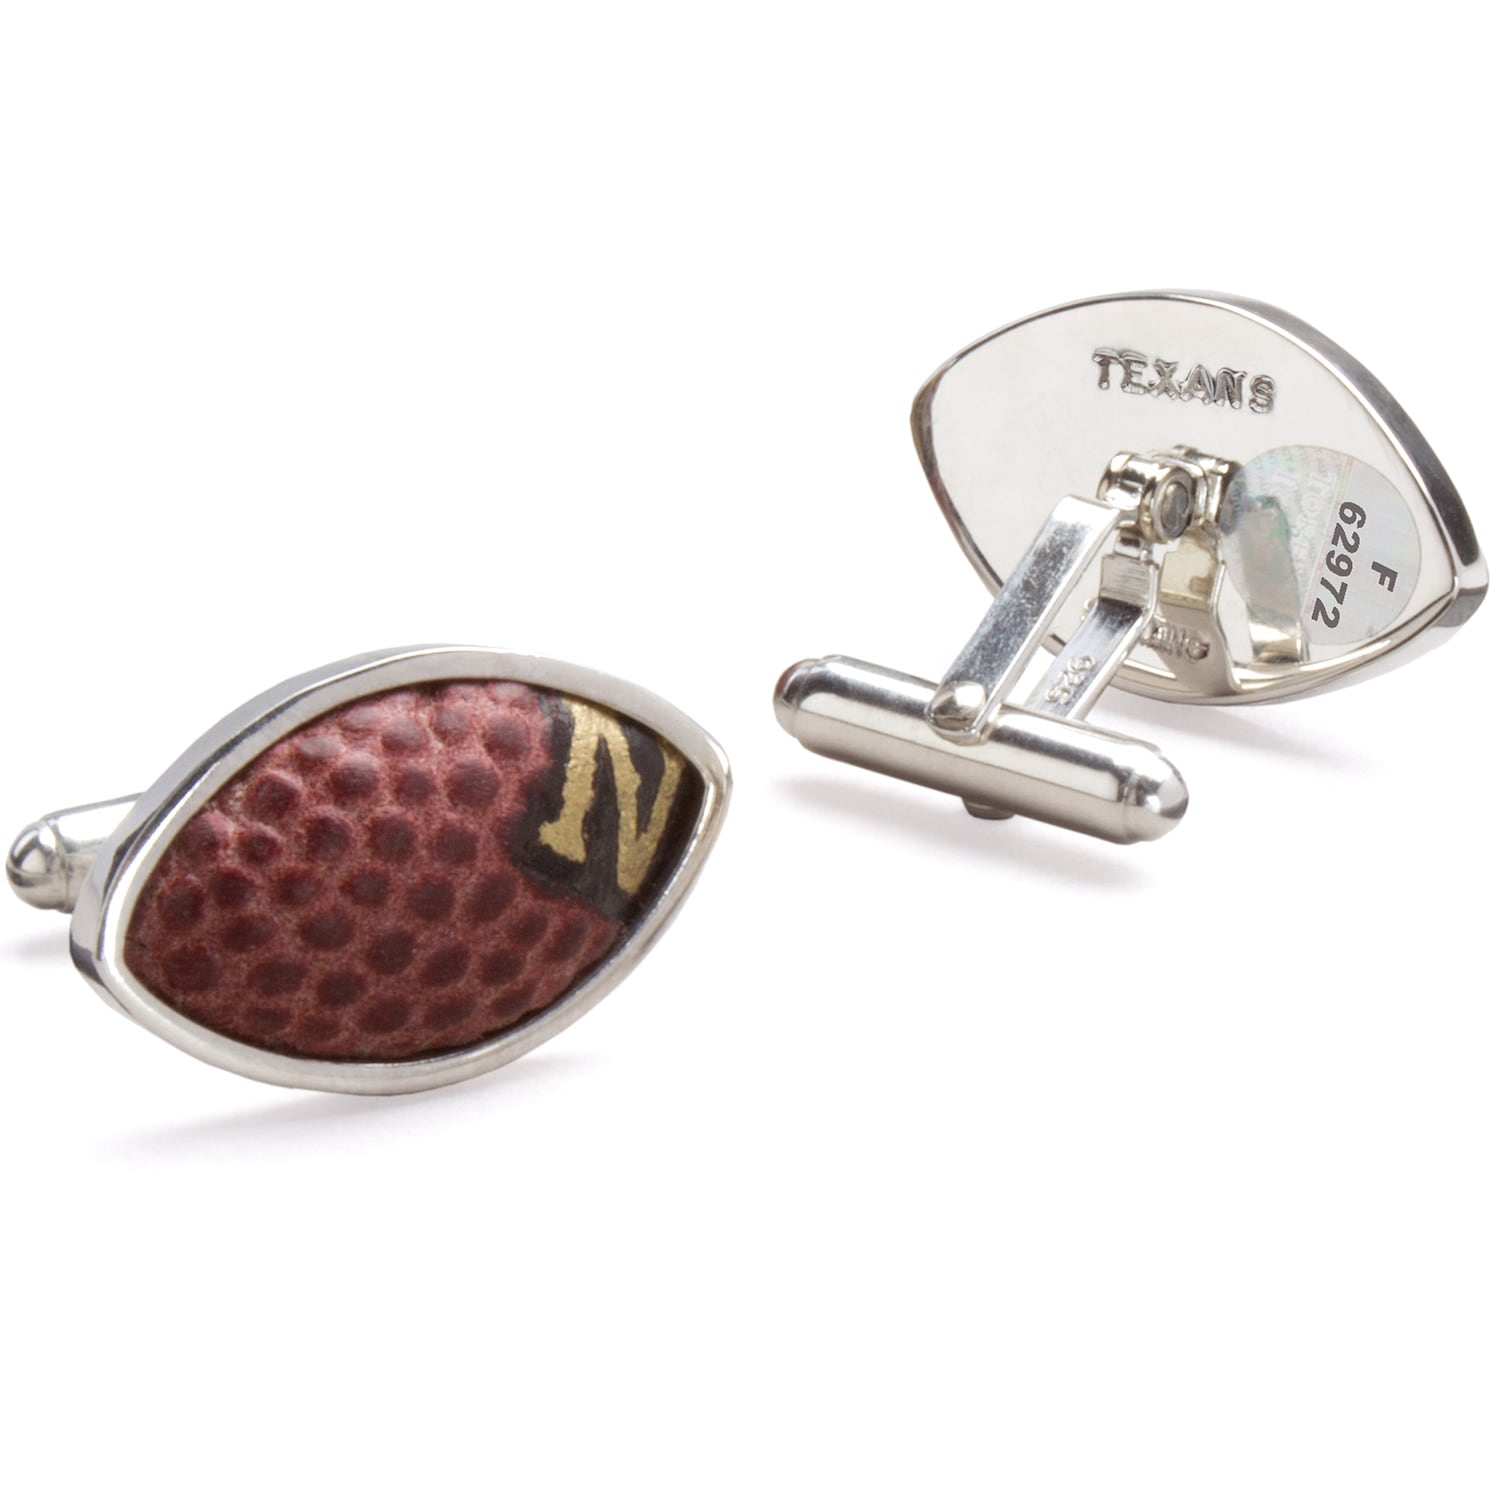 Houston Texans Tokens & Icons Game-Used Football Cuff Links